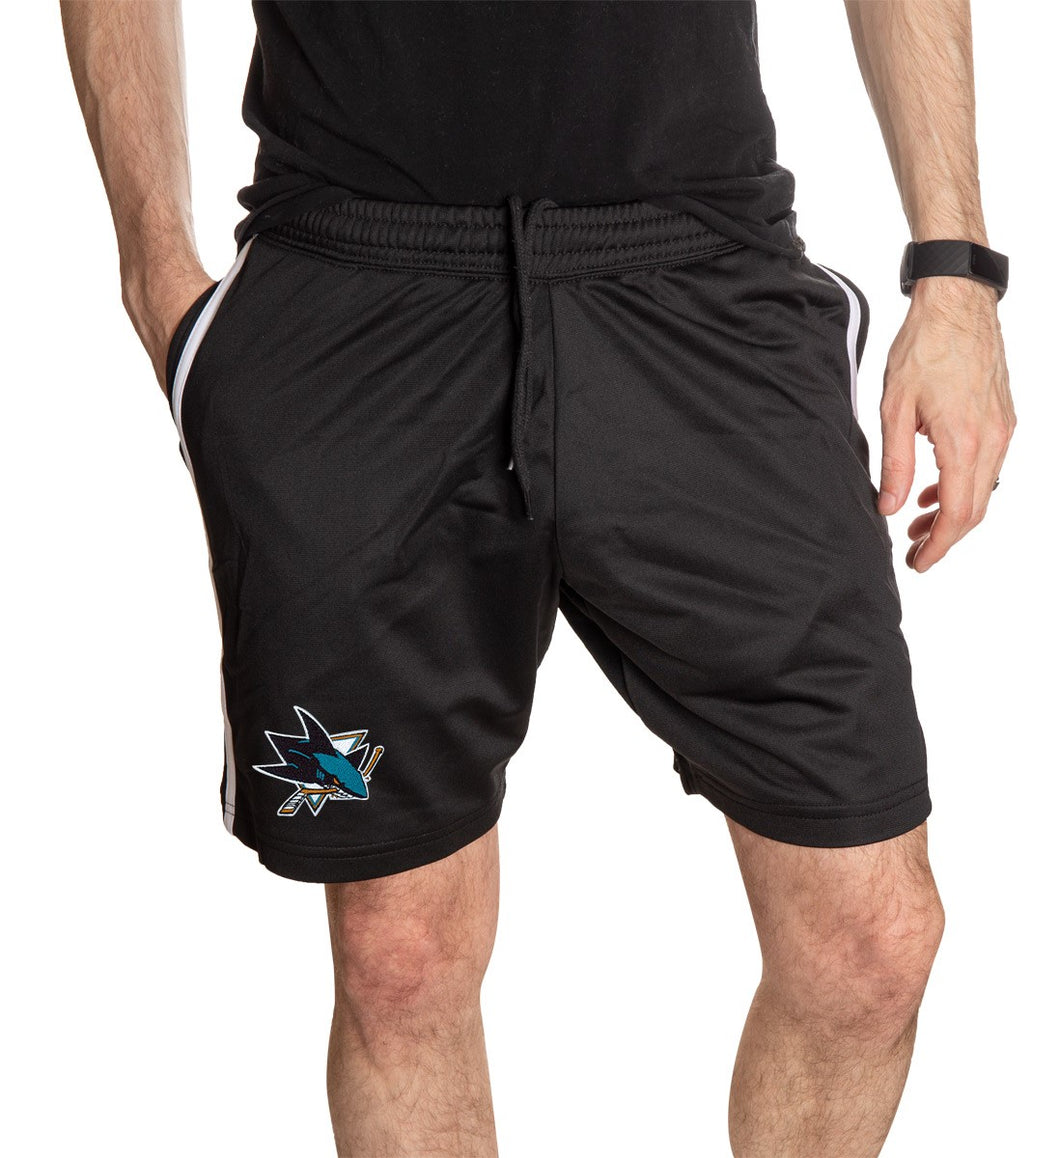 NHL Mens Official Team Two-Stripe Shorts- San Jose Sharks Full Length Front View With Man Hand In Pocket